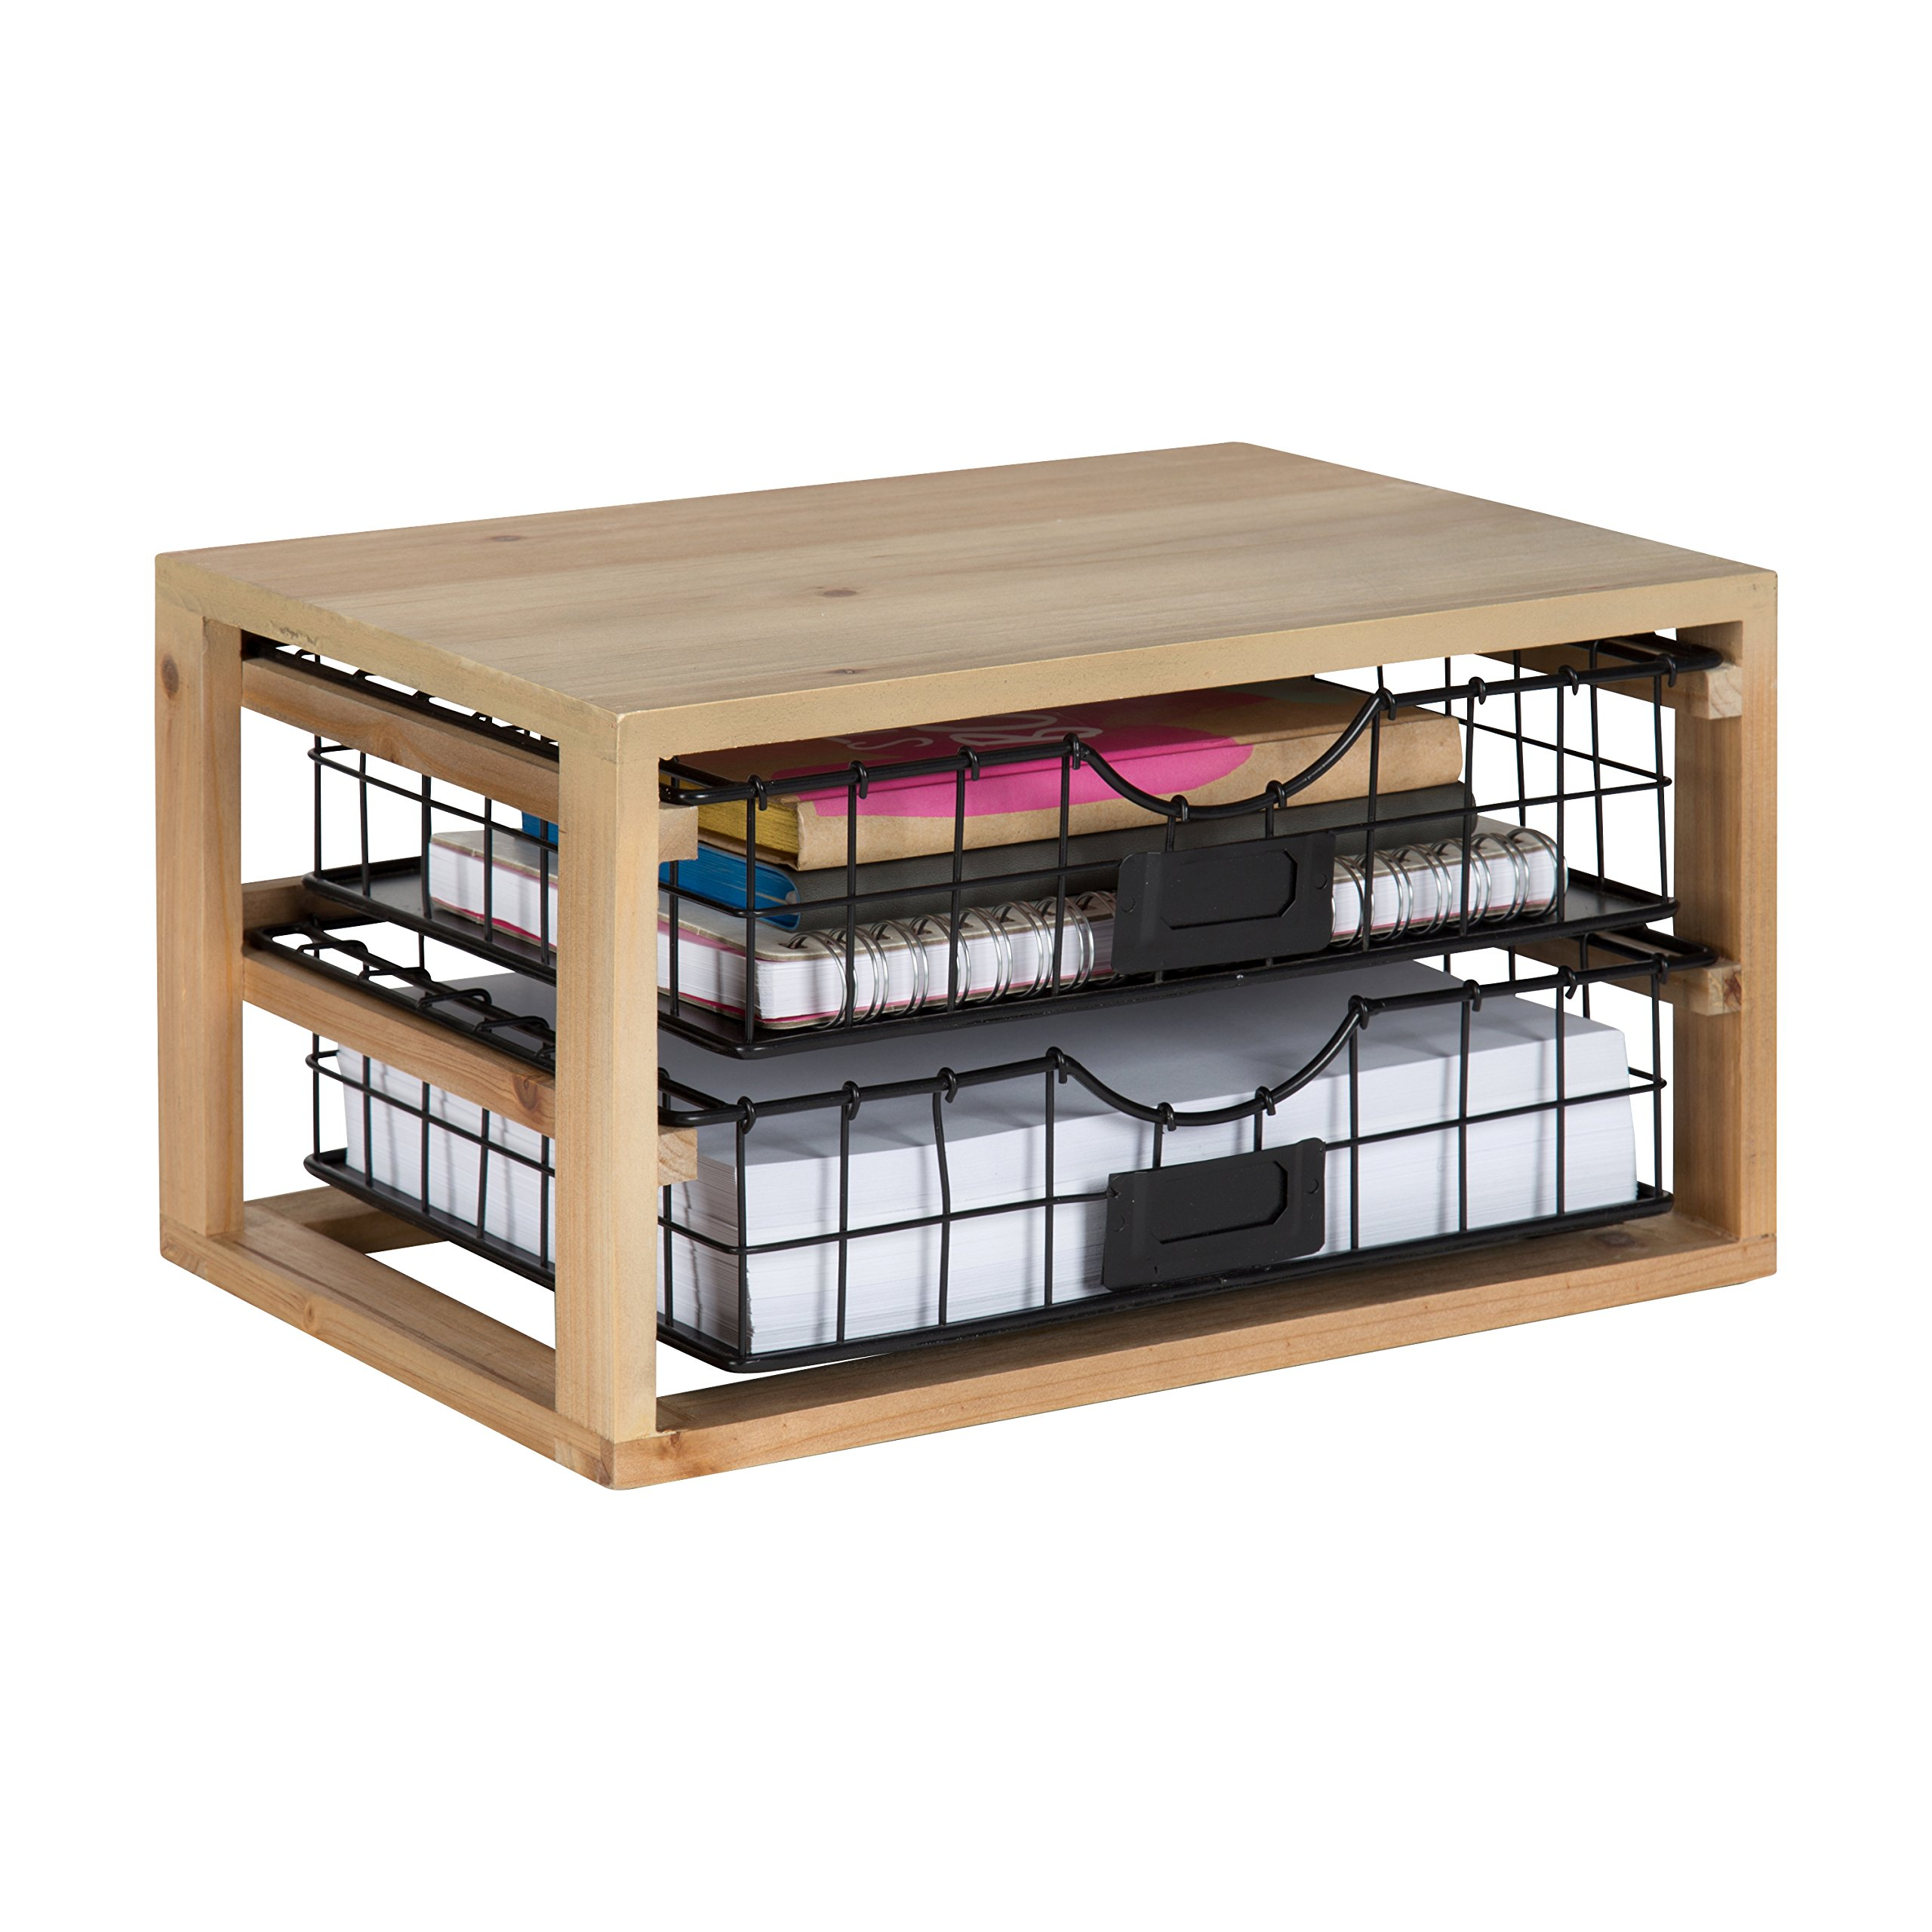 Kate and Laurel Tanner Rustic Wood and Metal Desktop Drawer Organizer Letter Tray by Kate and Laurel (Image #4)